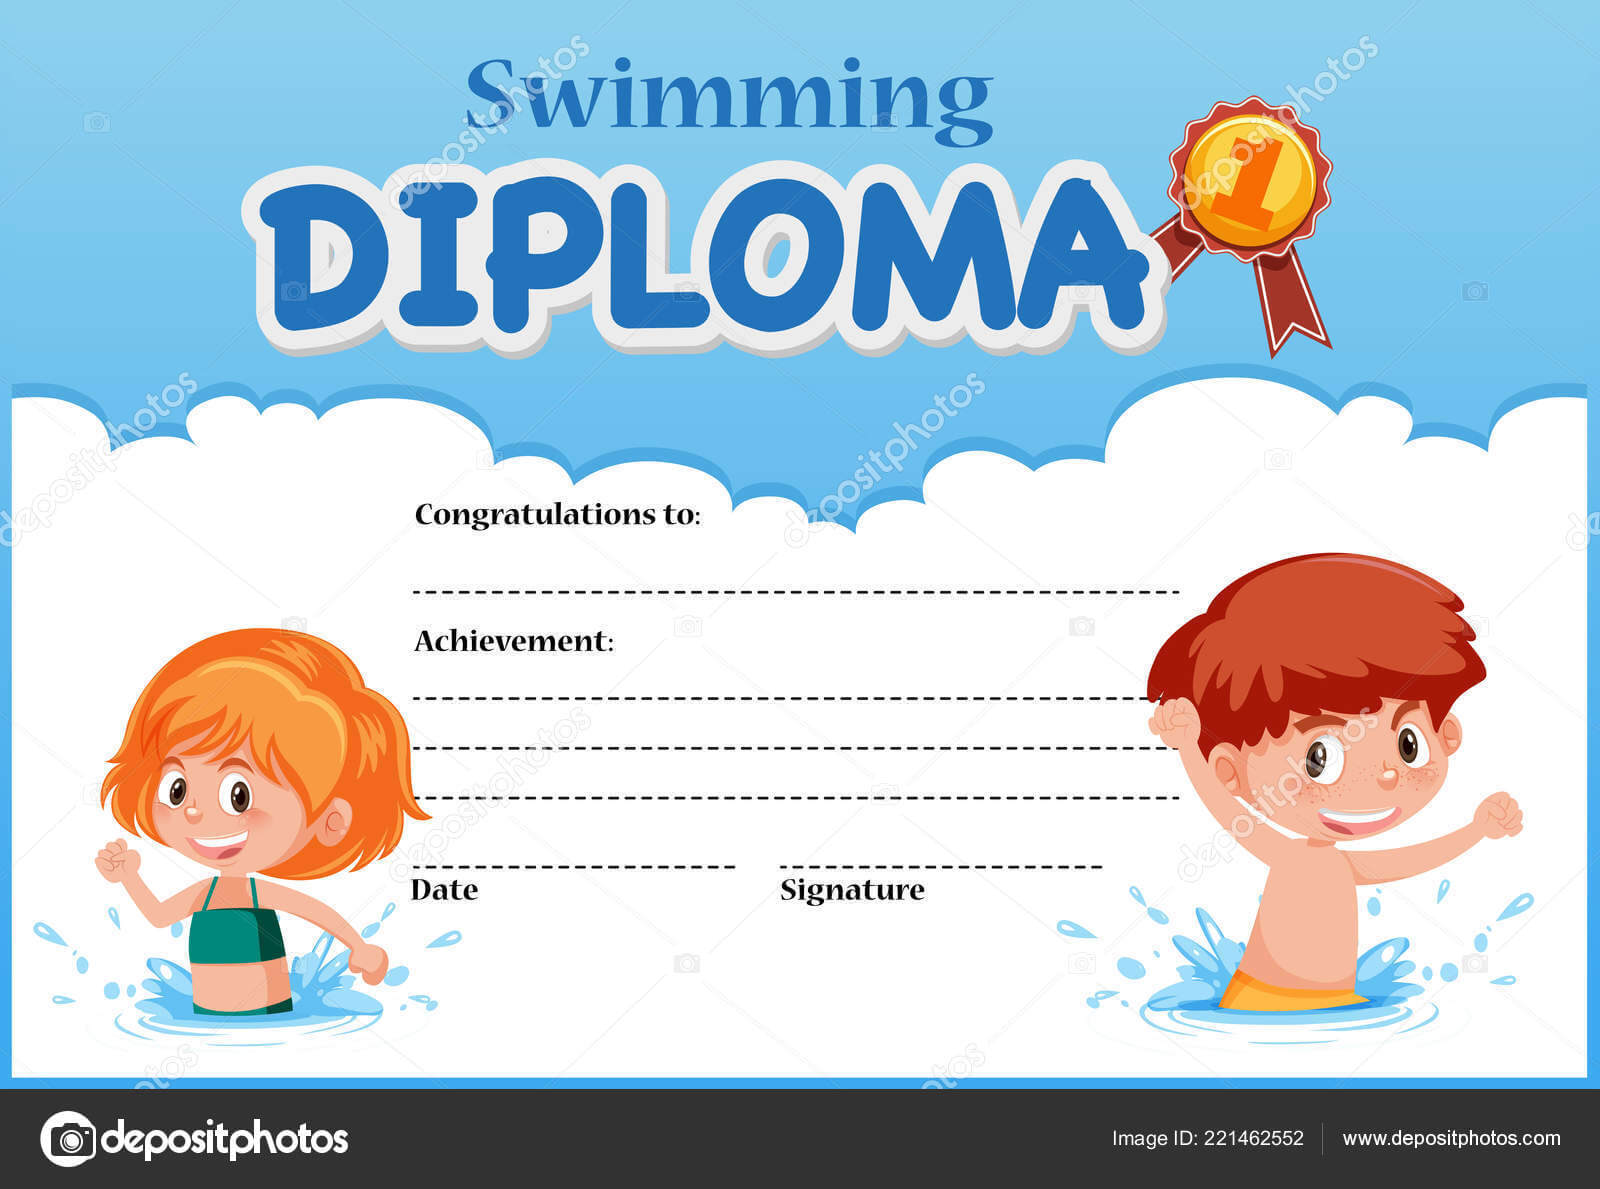 Swimming Diploma Certificate Template Illustration — Stock Intended For Swimming Award Certificate Template